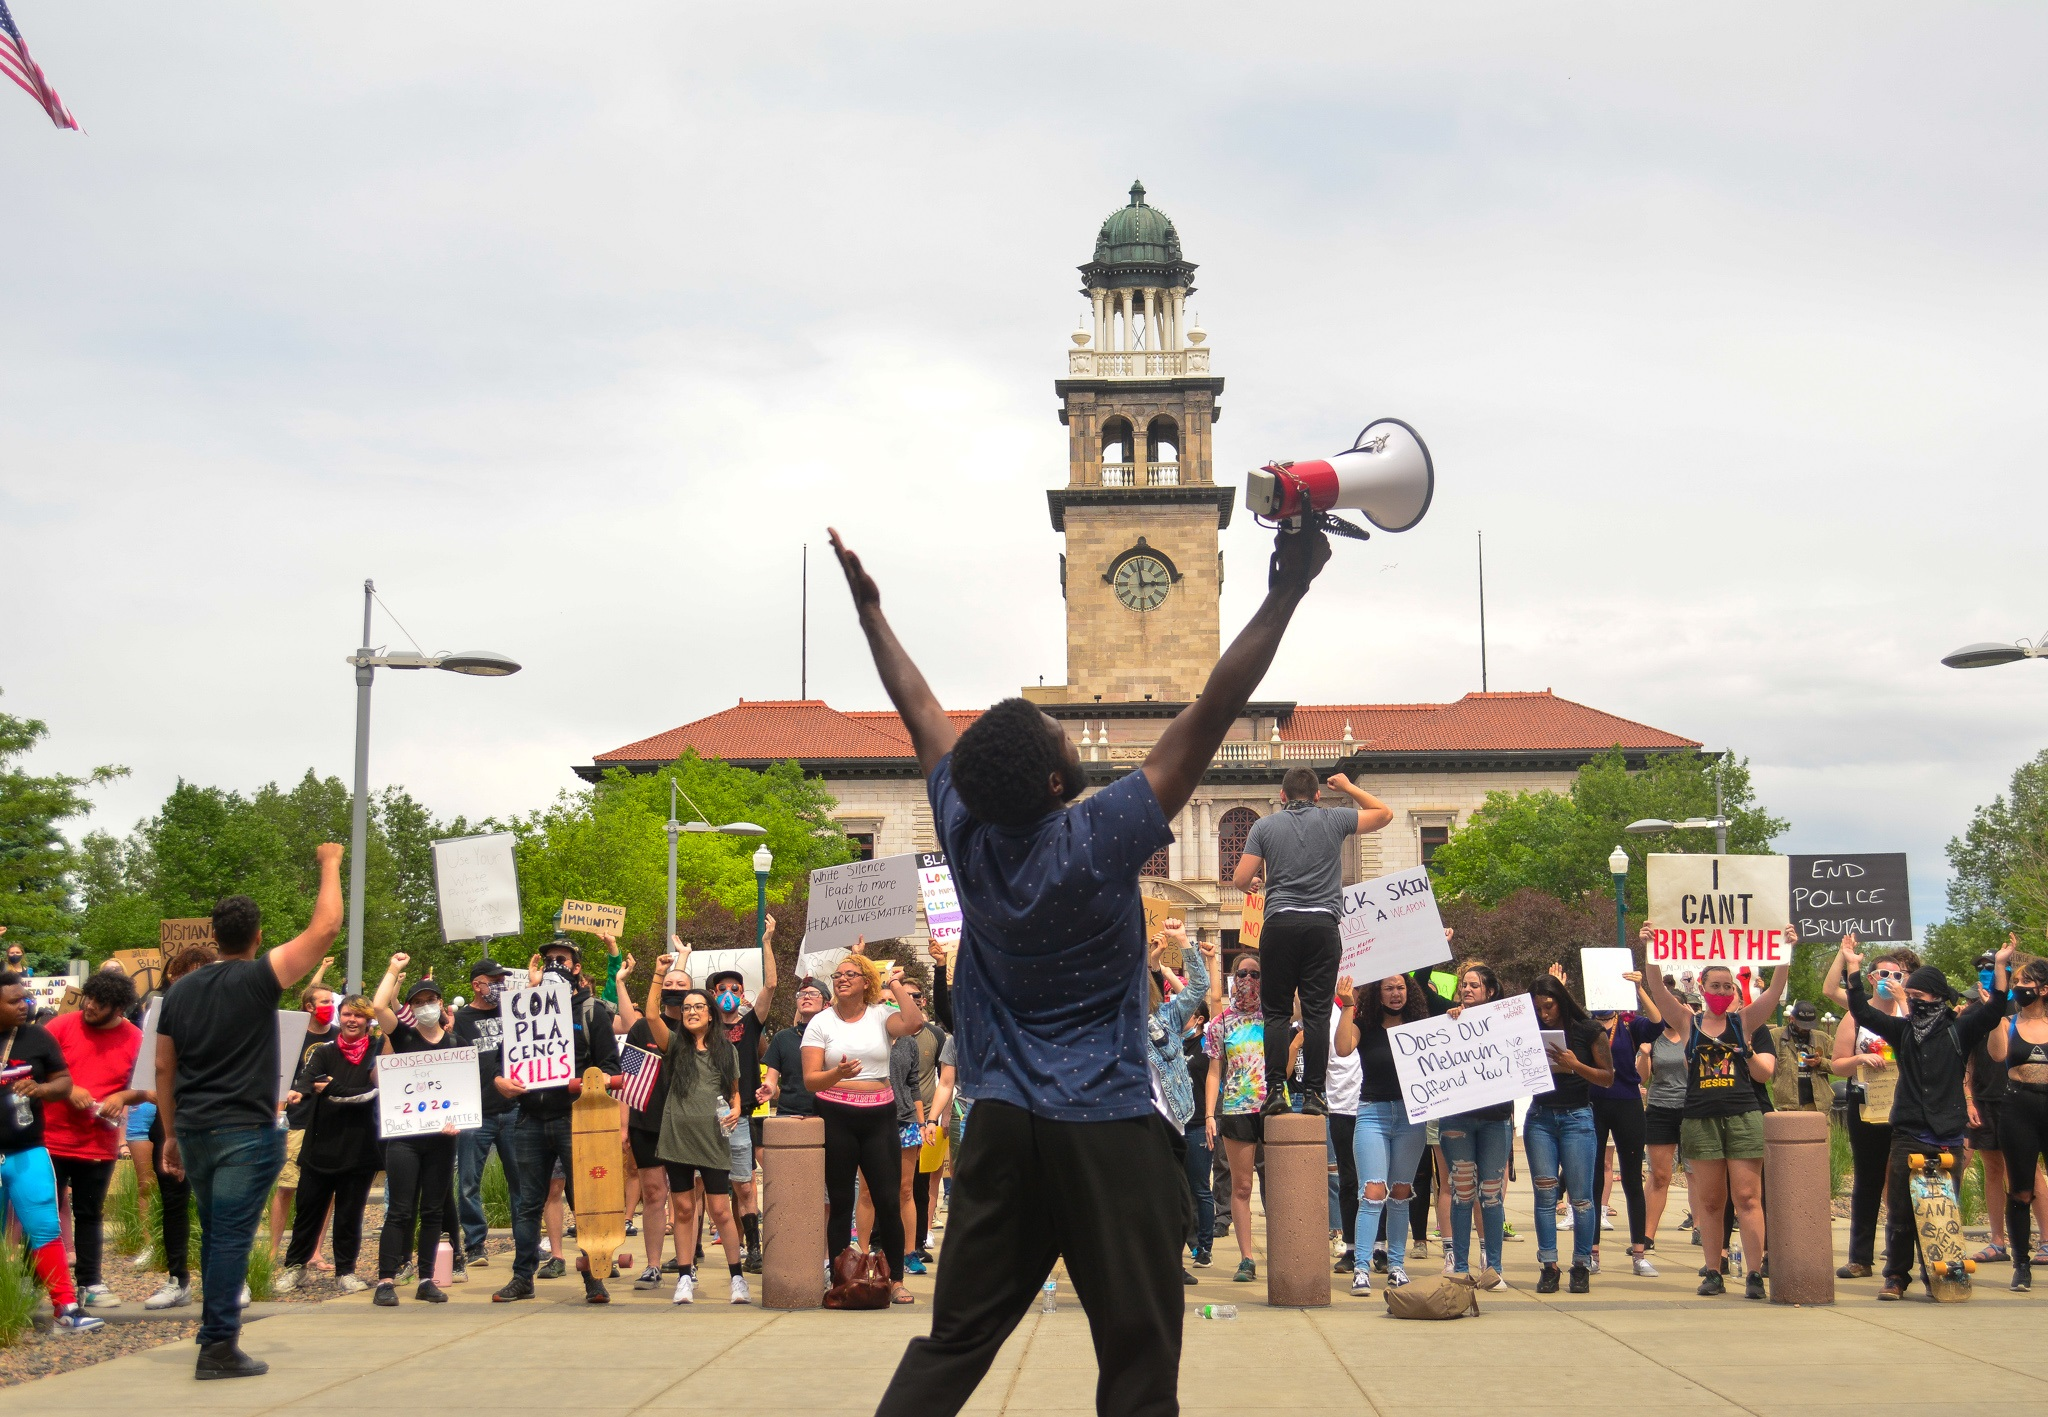 """Activist and protest organizer, Charles Johnson became inspired as he leads early 200 protesters make their voices heard in front of the Terry R. Harris Judicial Complex in downtown Colorado Springs, CO on June 2, 2020 to bring attention to the death of George Floyd. """"It's been awesome,"""" said Johnson in reference to loud but peaceful protest. Floyd's death at the hands and knee of a Minnesota police officer has sparked a national protest against police brutality."""